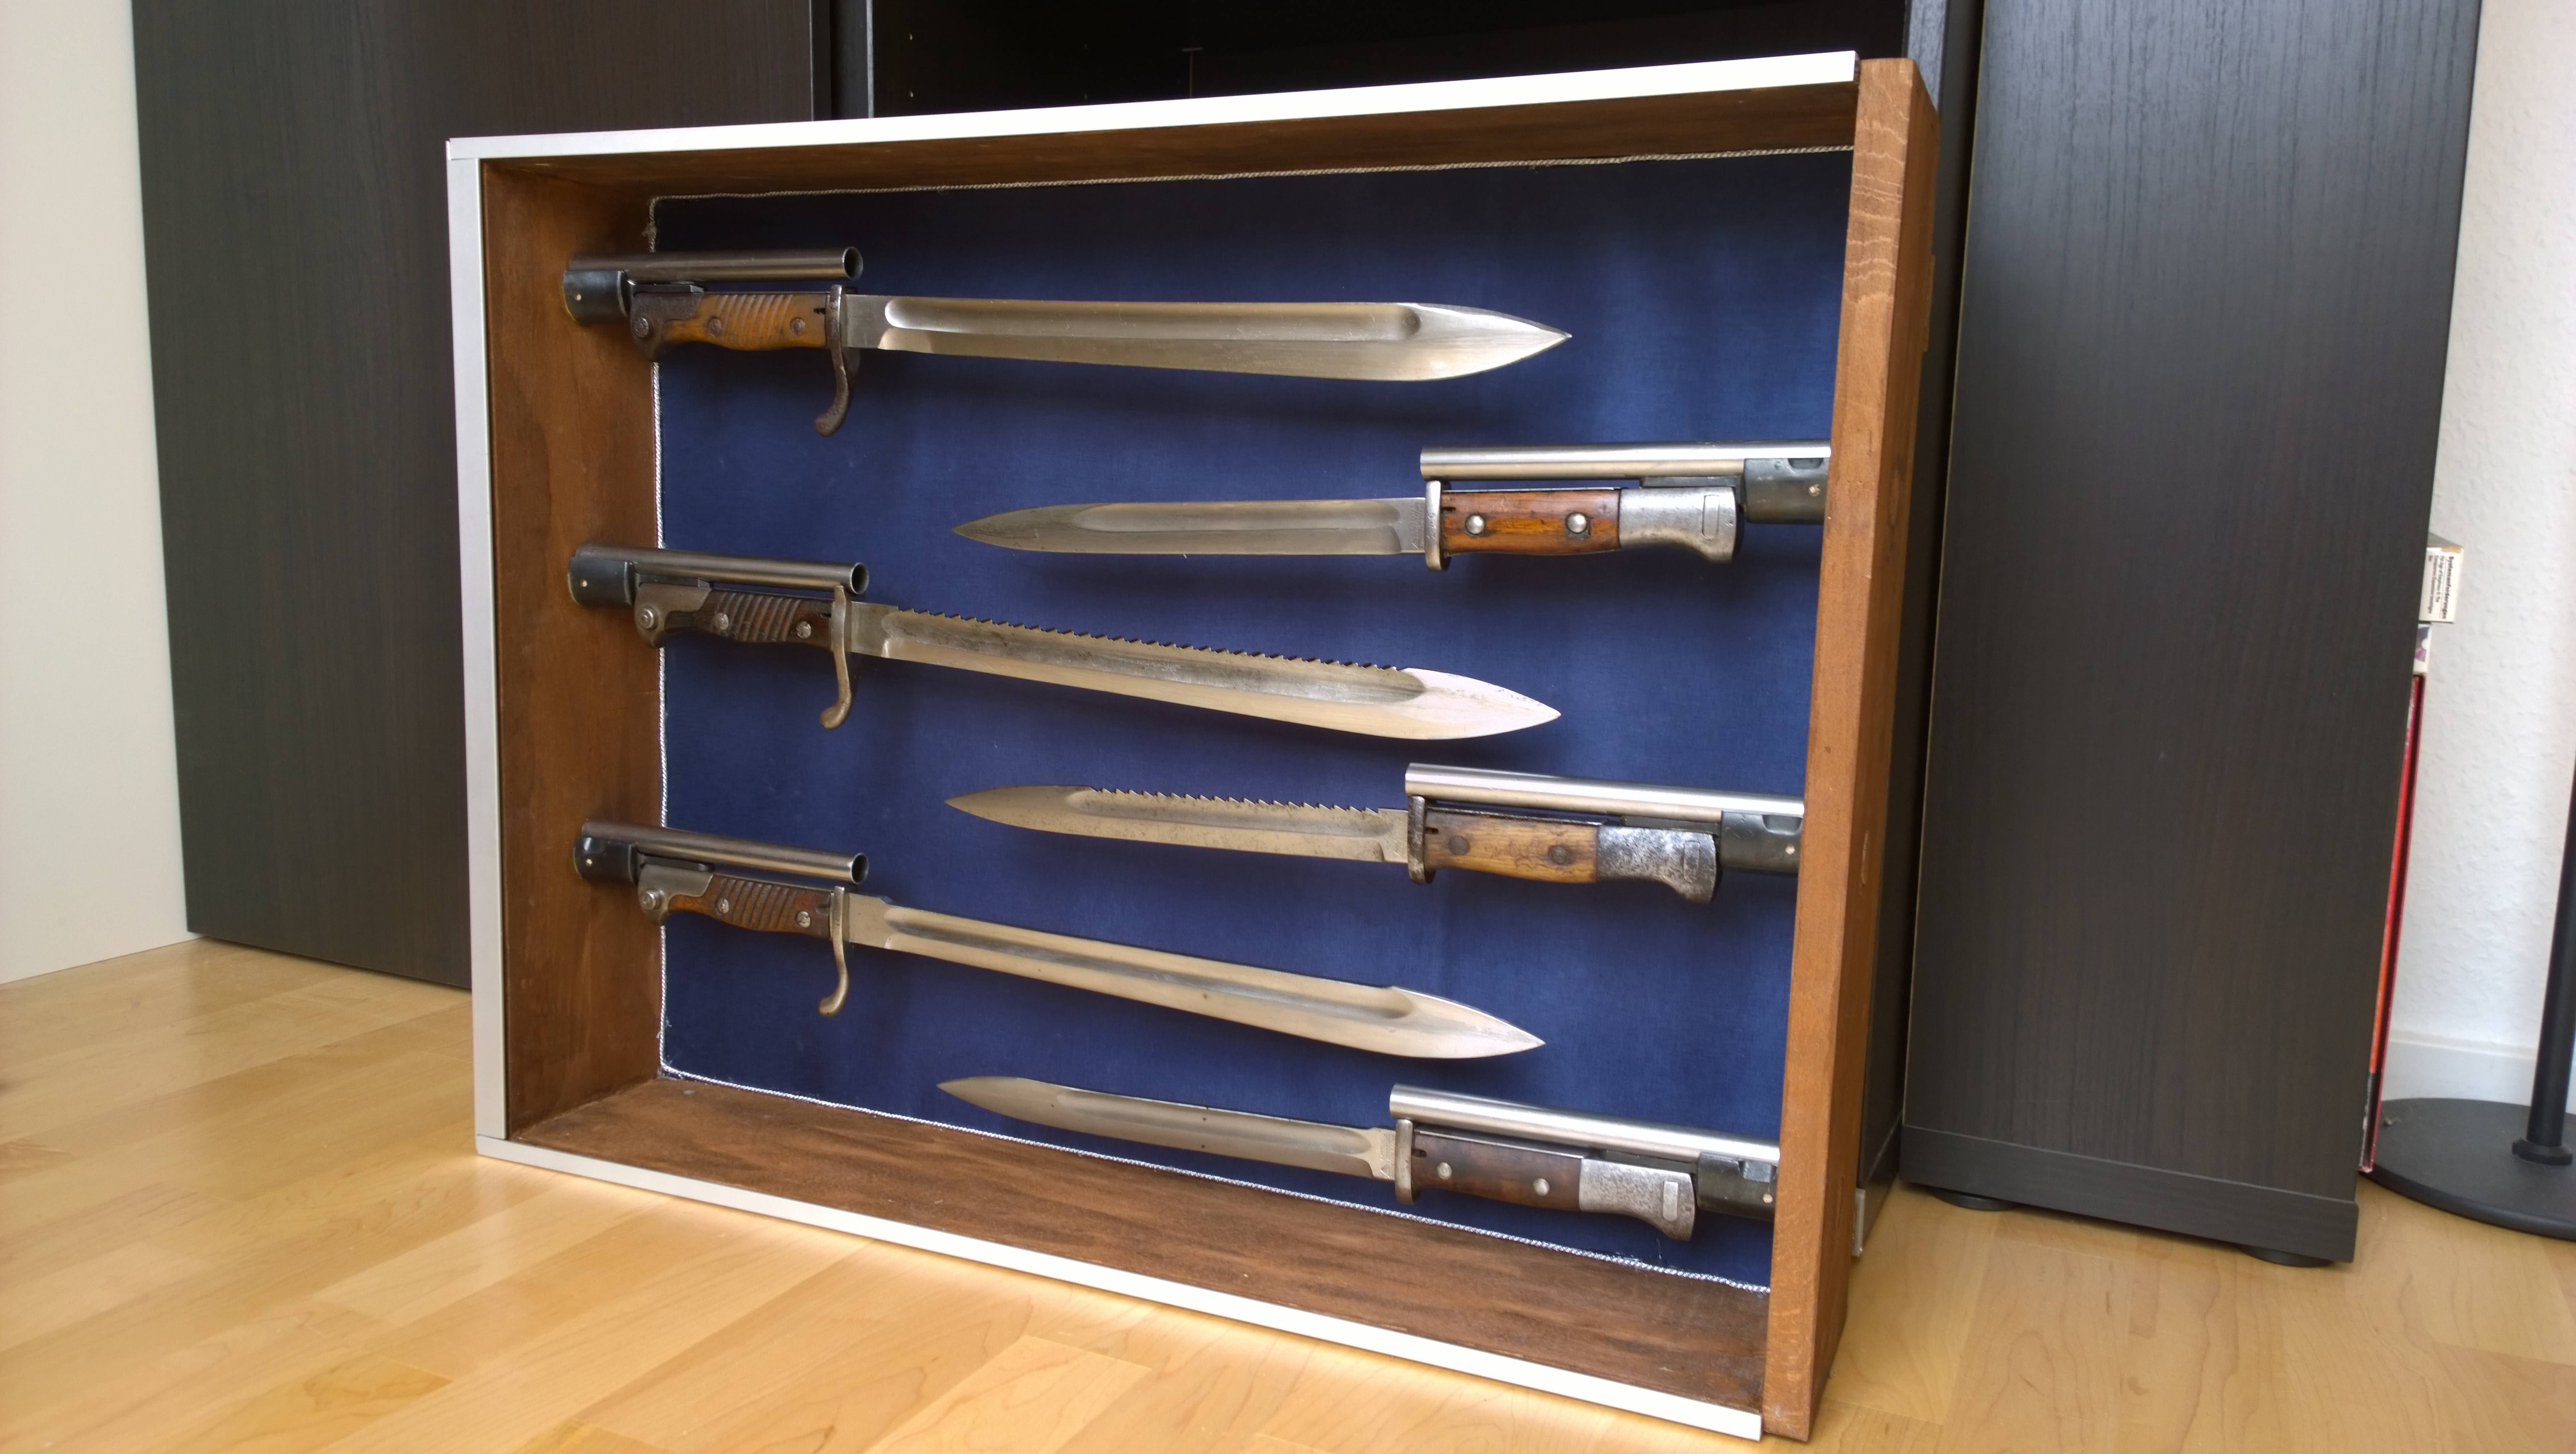 A Bayonet Display Case I Built For Parts Of My Collection Https Ift Tt 2pfik75 Display Case Bayonet Display